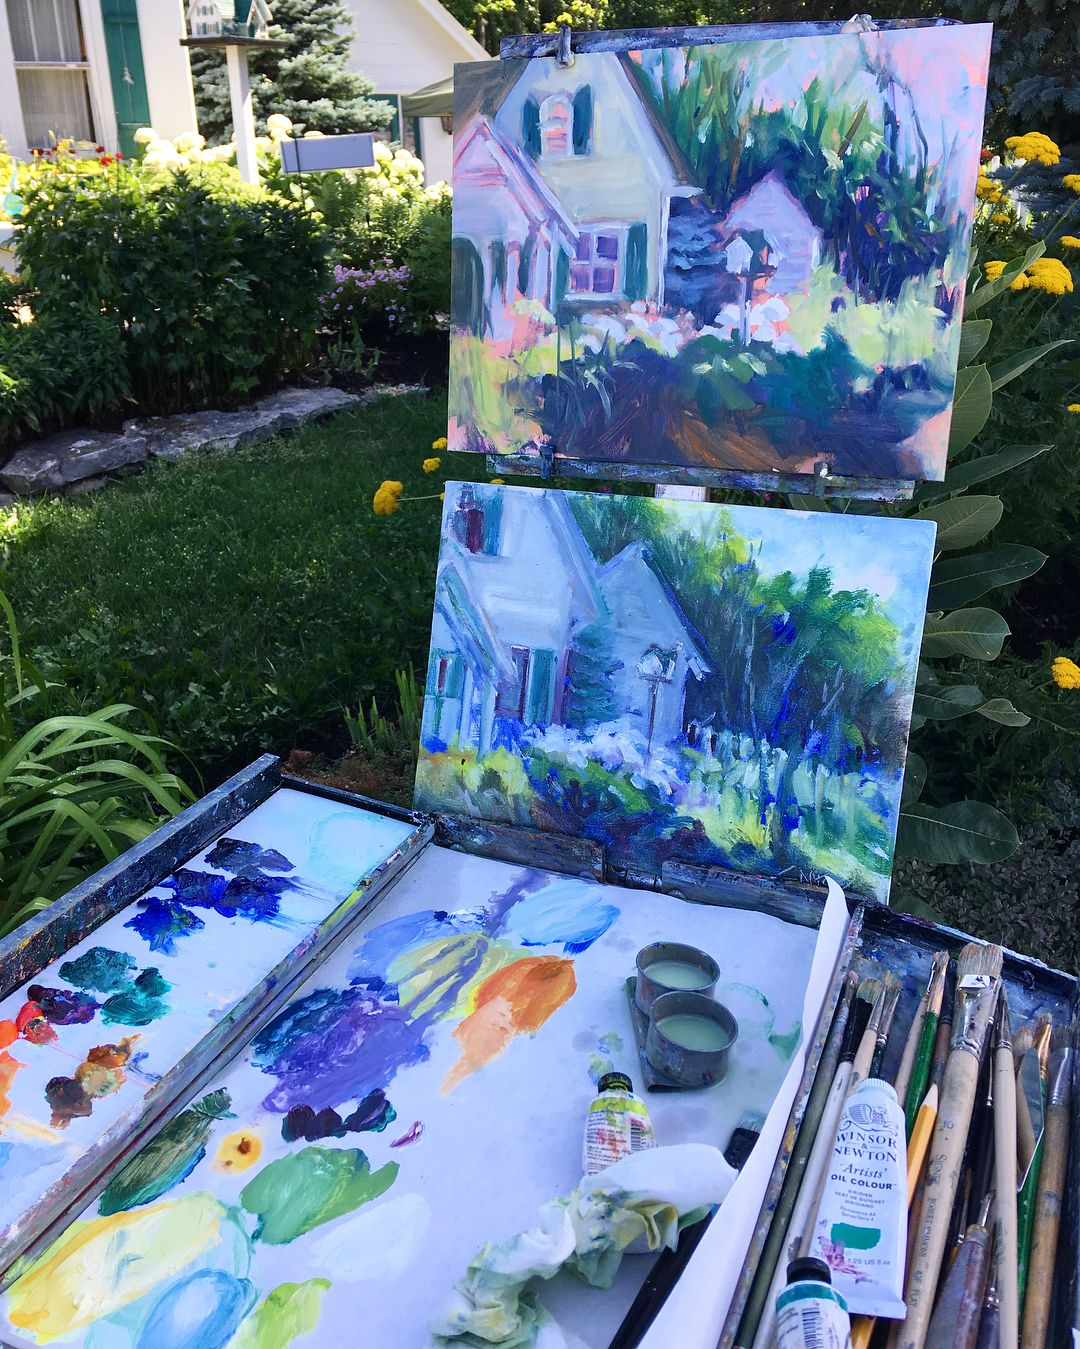 Door County Plein Air Festival Is Making Its Way To Sister Bay Watch The Quick Paint In Waterfront Park On Saturday From 9 Air Festival Door County Sister Bay